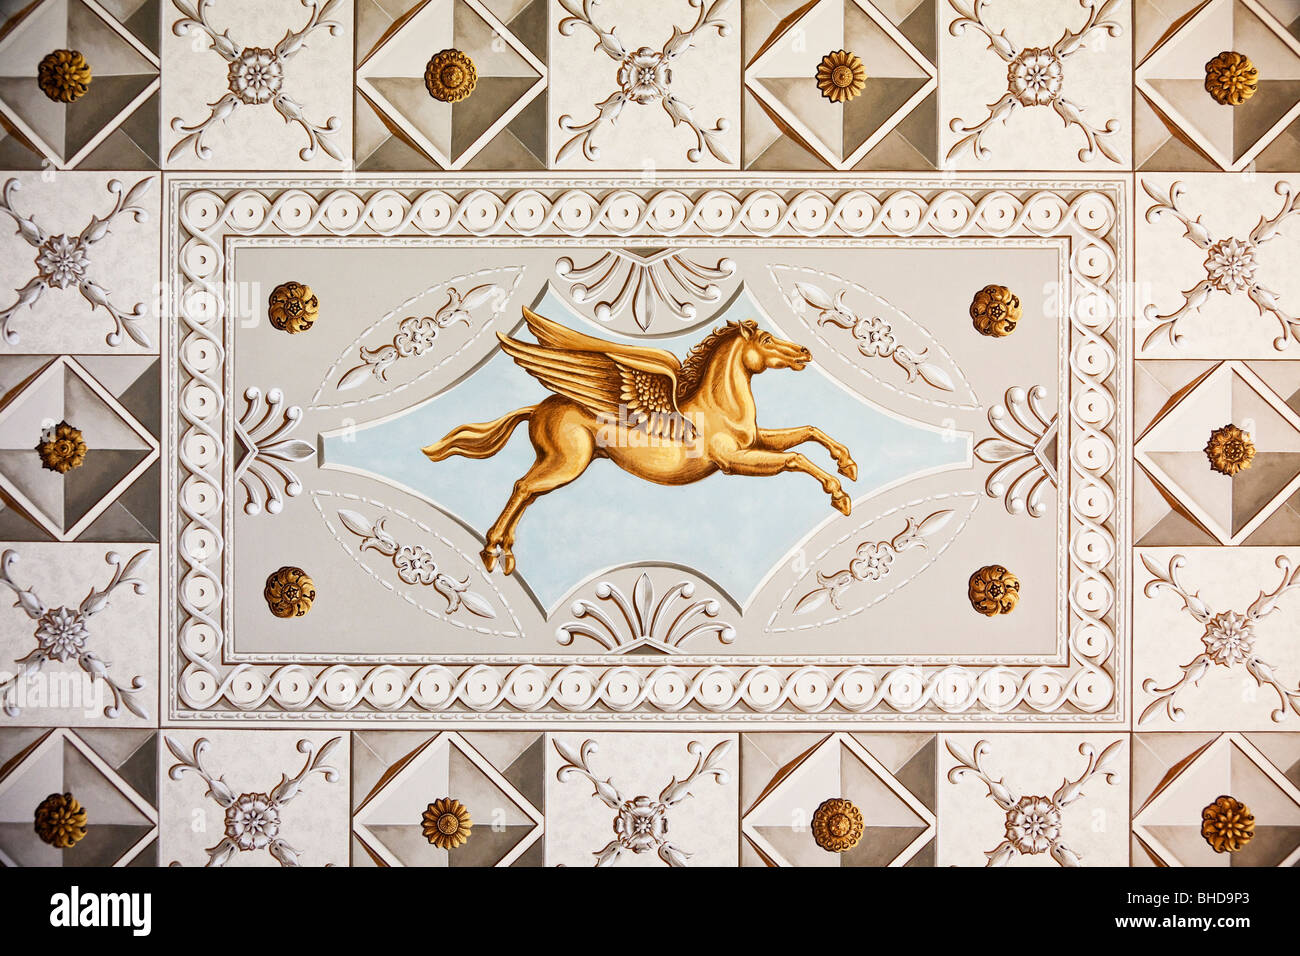 Ceiling fresco painting of Pegasus in the 'Roman House', a UNESCO world heritage site in Weimar, Germany, - Stock Image